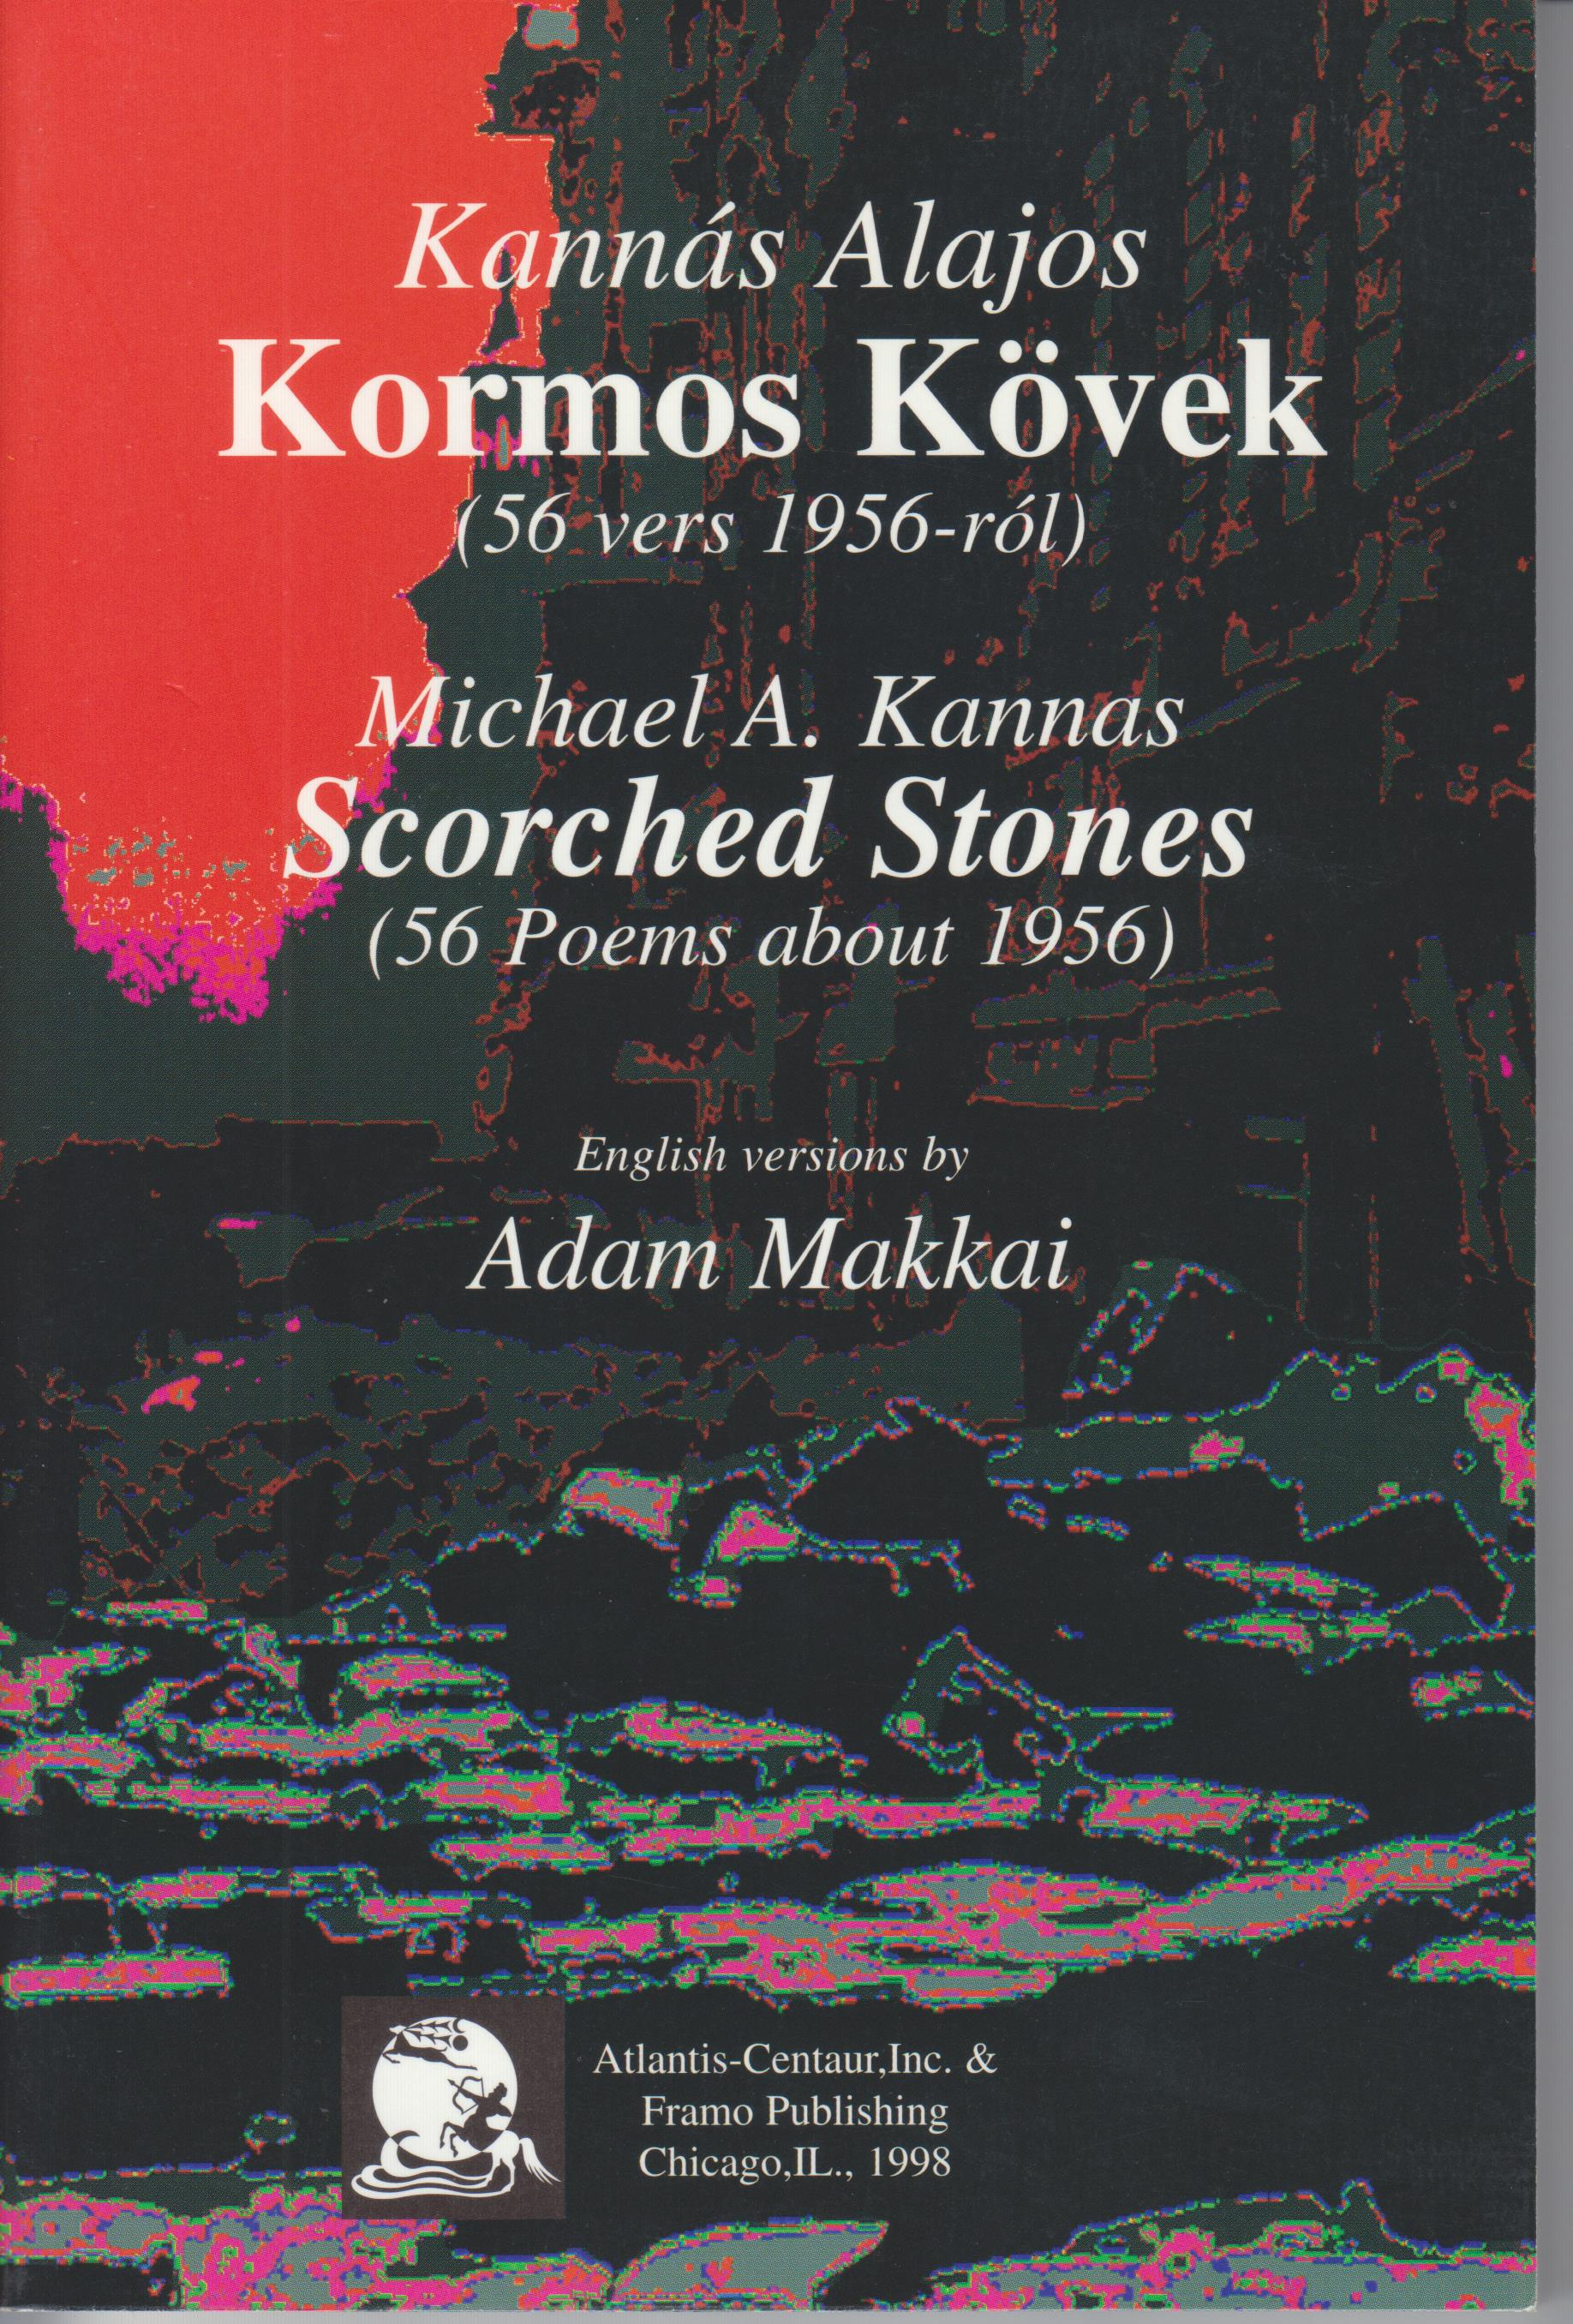 Image for Scorched Stones [Kormos Kovek] [56 Poems from the Hungarian Revolution of 1956